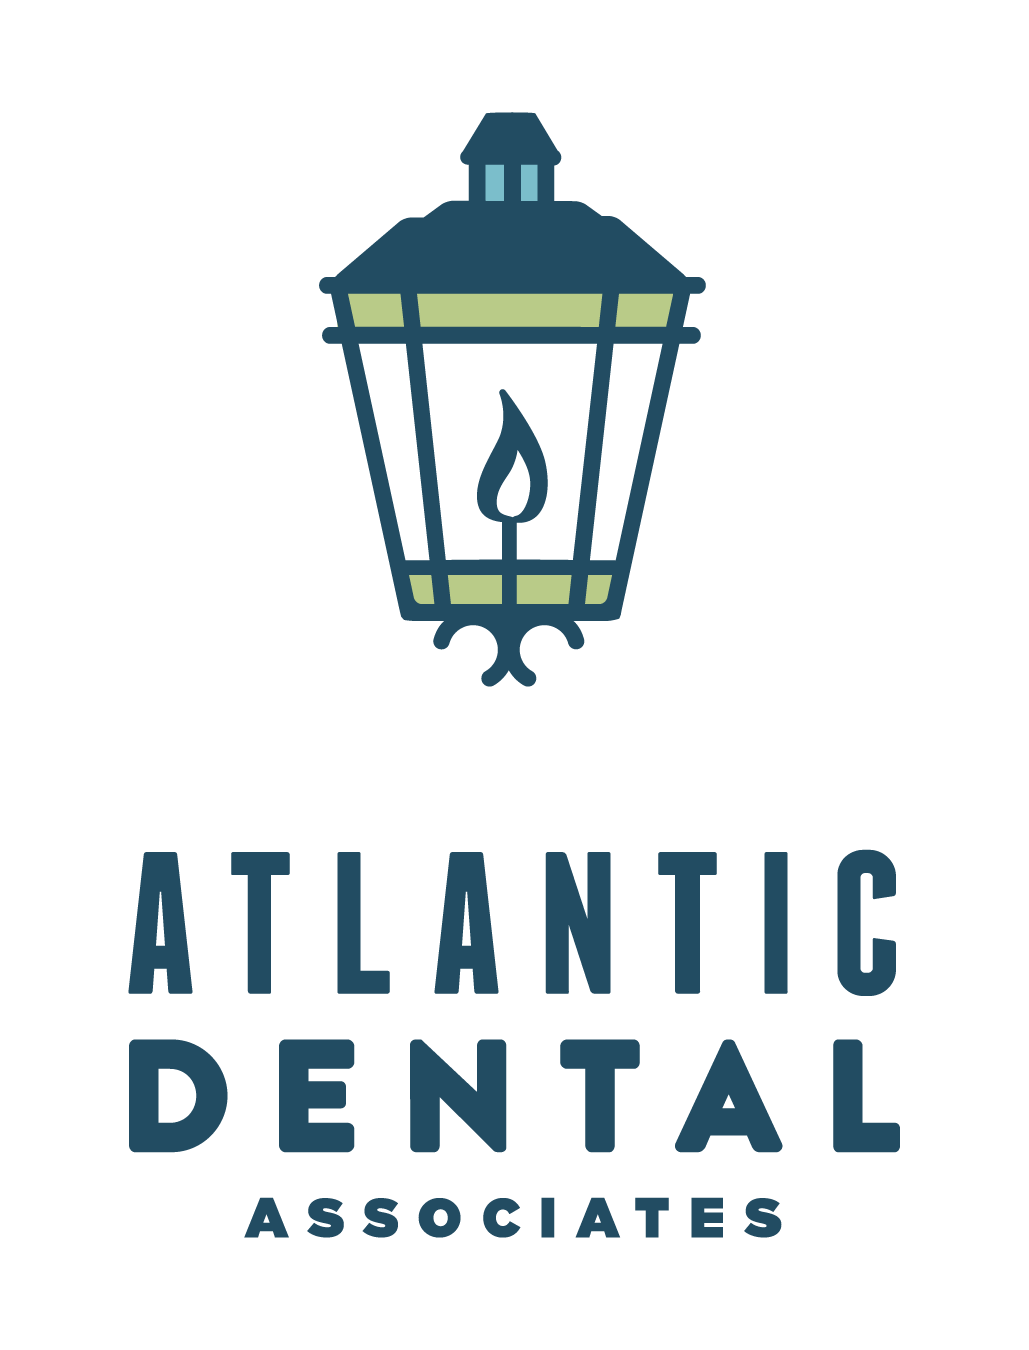 Atlantic Dental Associates